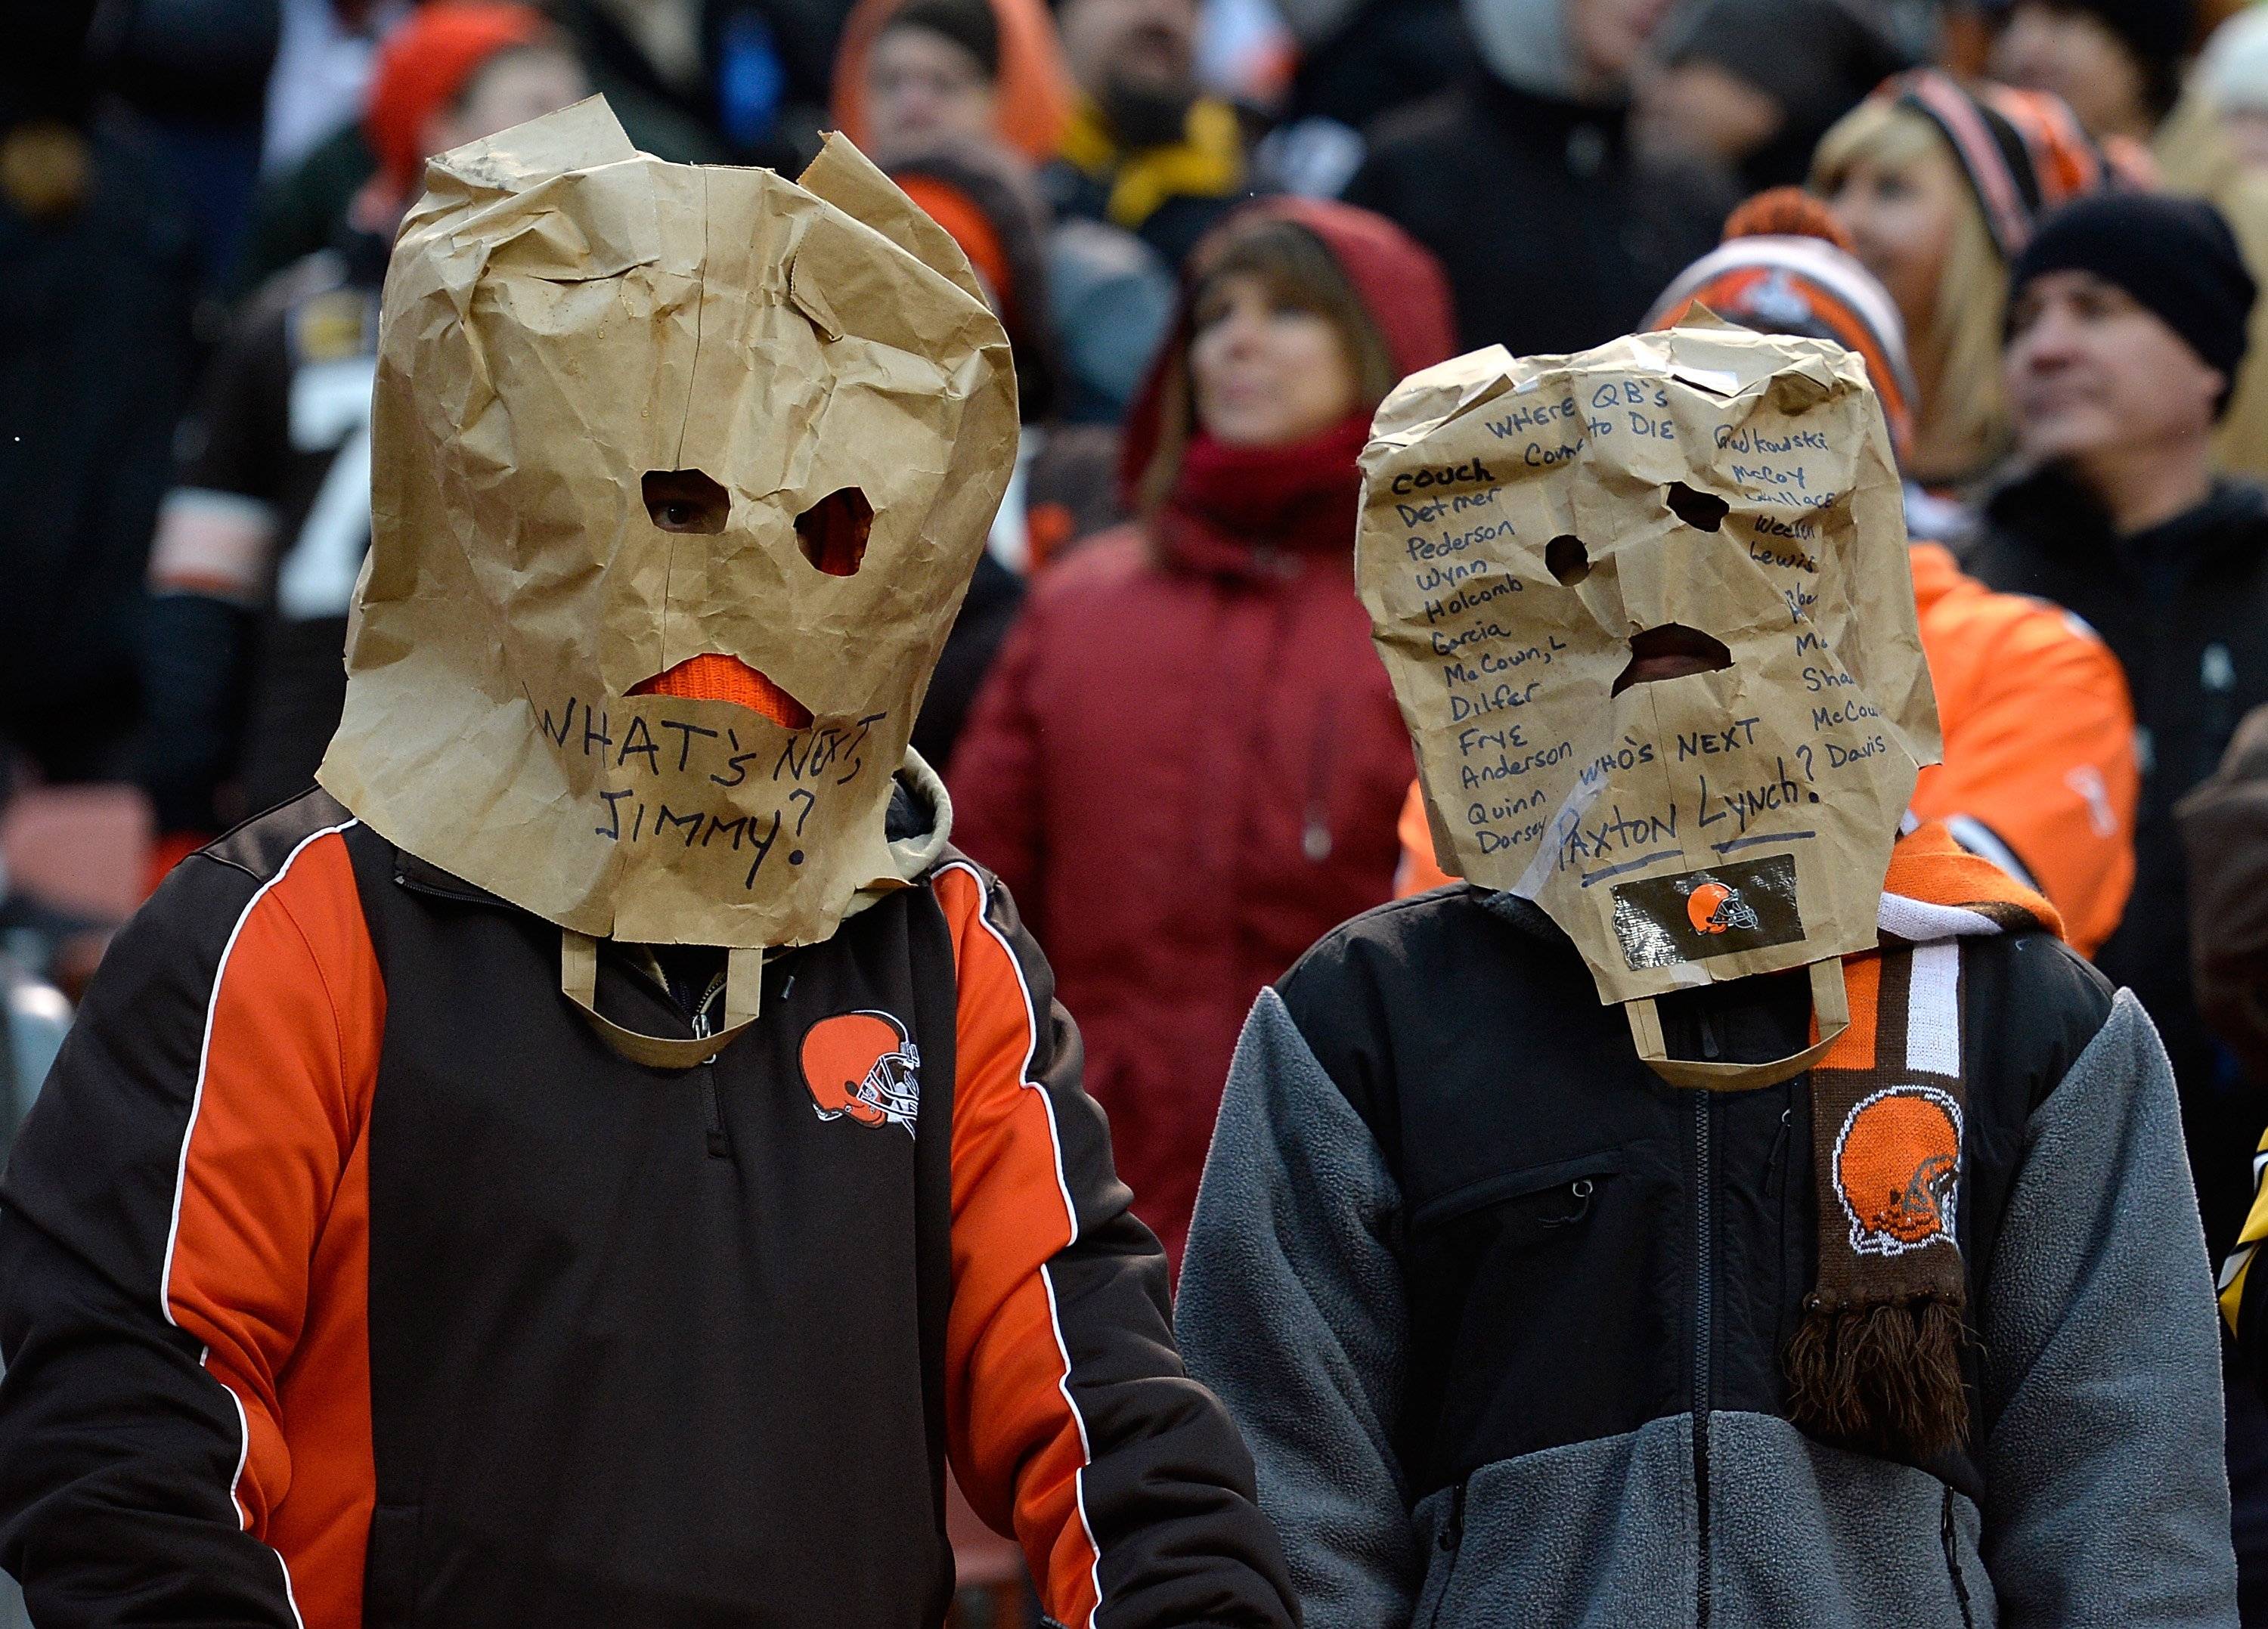 Will more analytics for the Cleveland Browns lead to fewer fans like this?